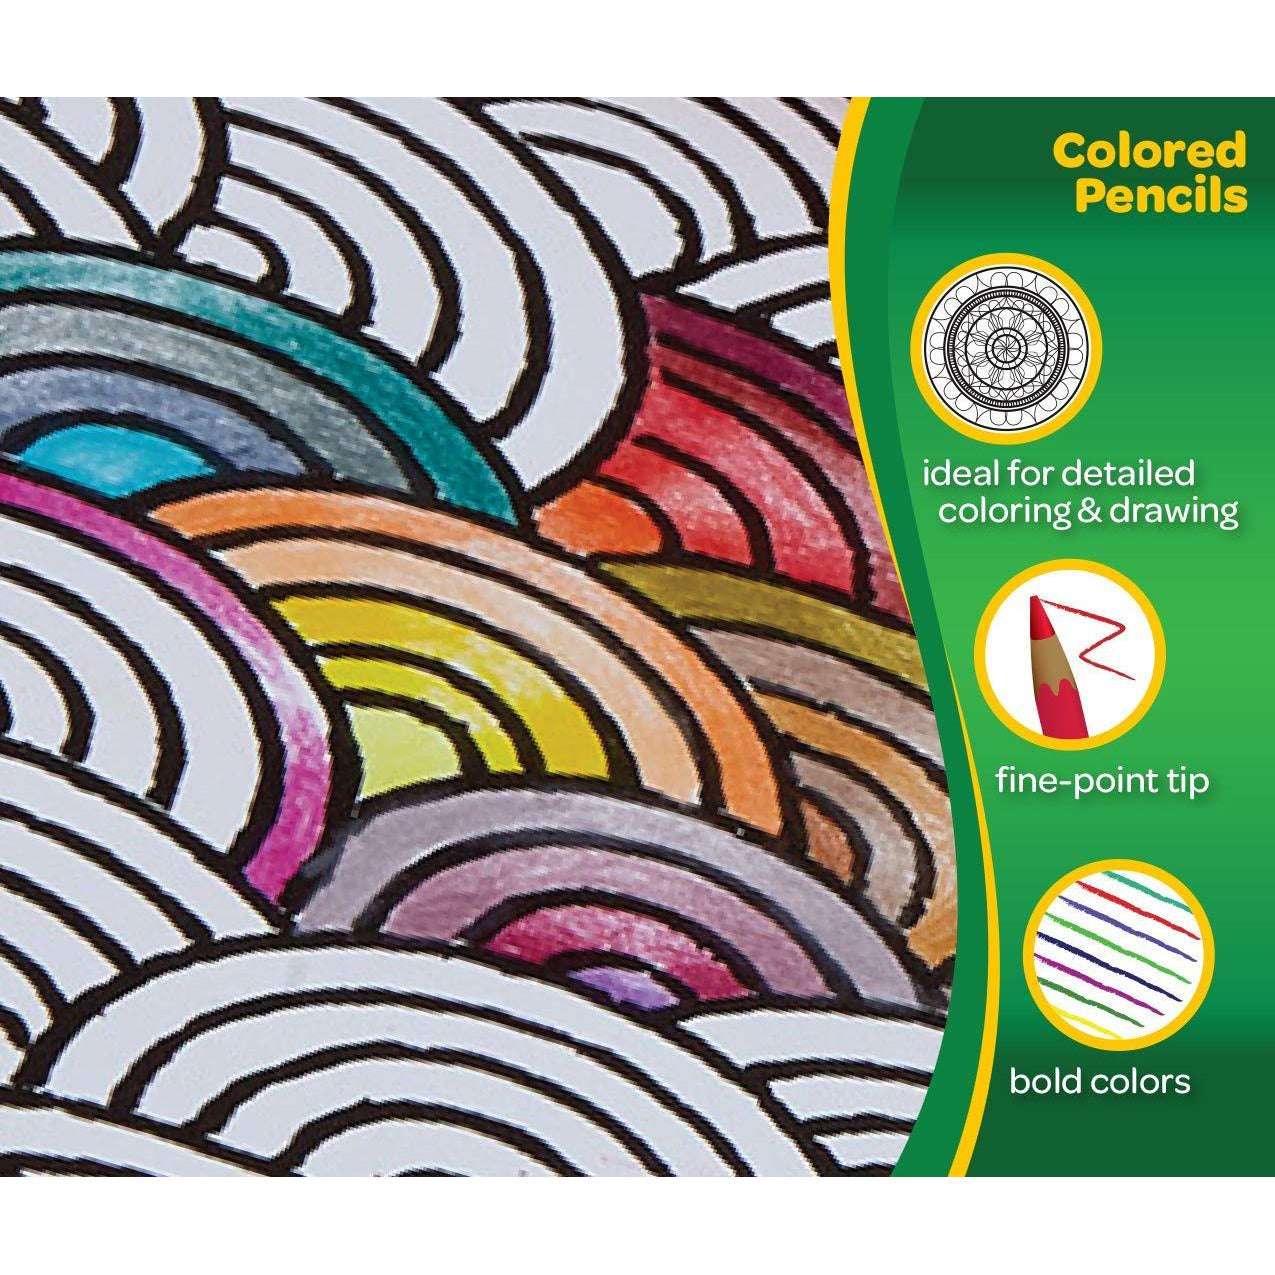 100 Lápices De Colores, Amazon Exclusive, Coloración para Adultos - TODOENCARGO.COM